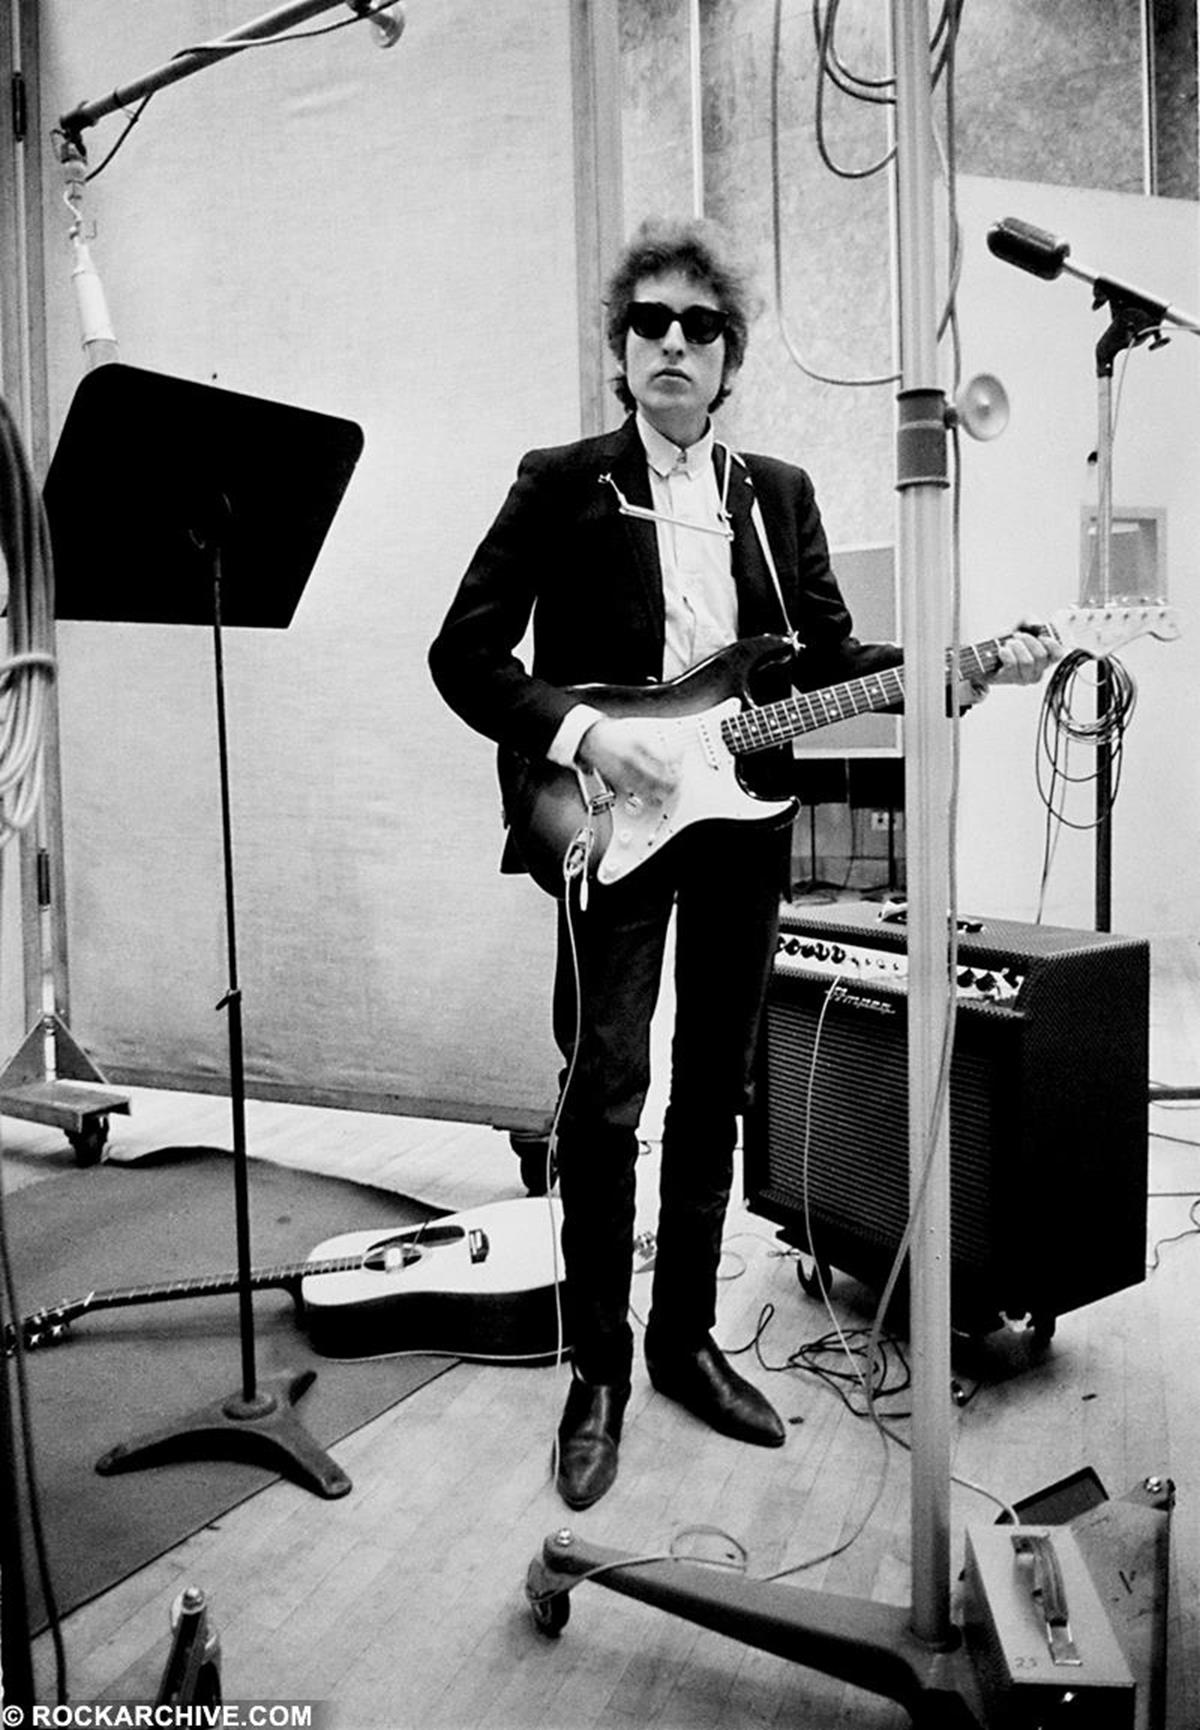 Bob Dylan recording his fifth studio album 'Bringing It All Back Home' in Studio A, Columbia Recording Studios in New York City 1965, the year he 'went electric'. © Don Hunstein